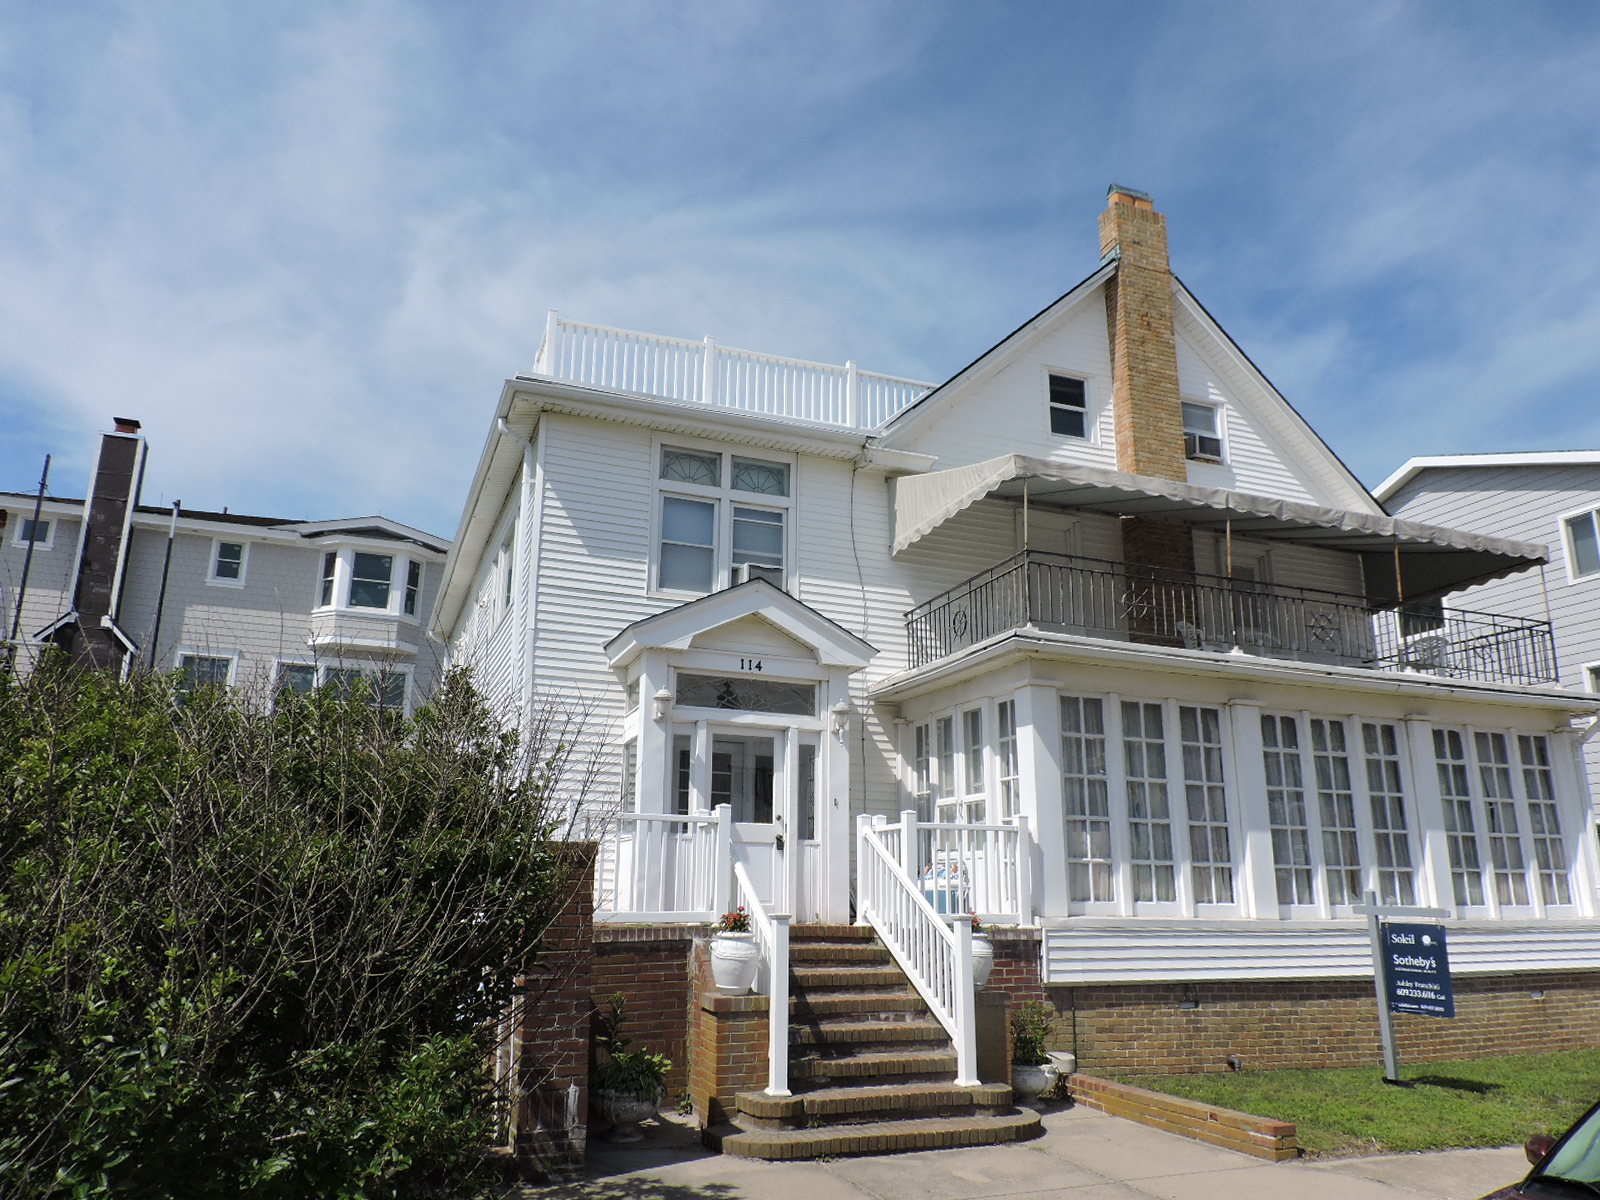 Single Family Home for Sale at 114 S. Portland Ave 114 S. Portland Avenue OCEAN FRONT Ventnor City, New Jersey 08406 United States